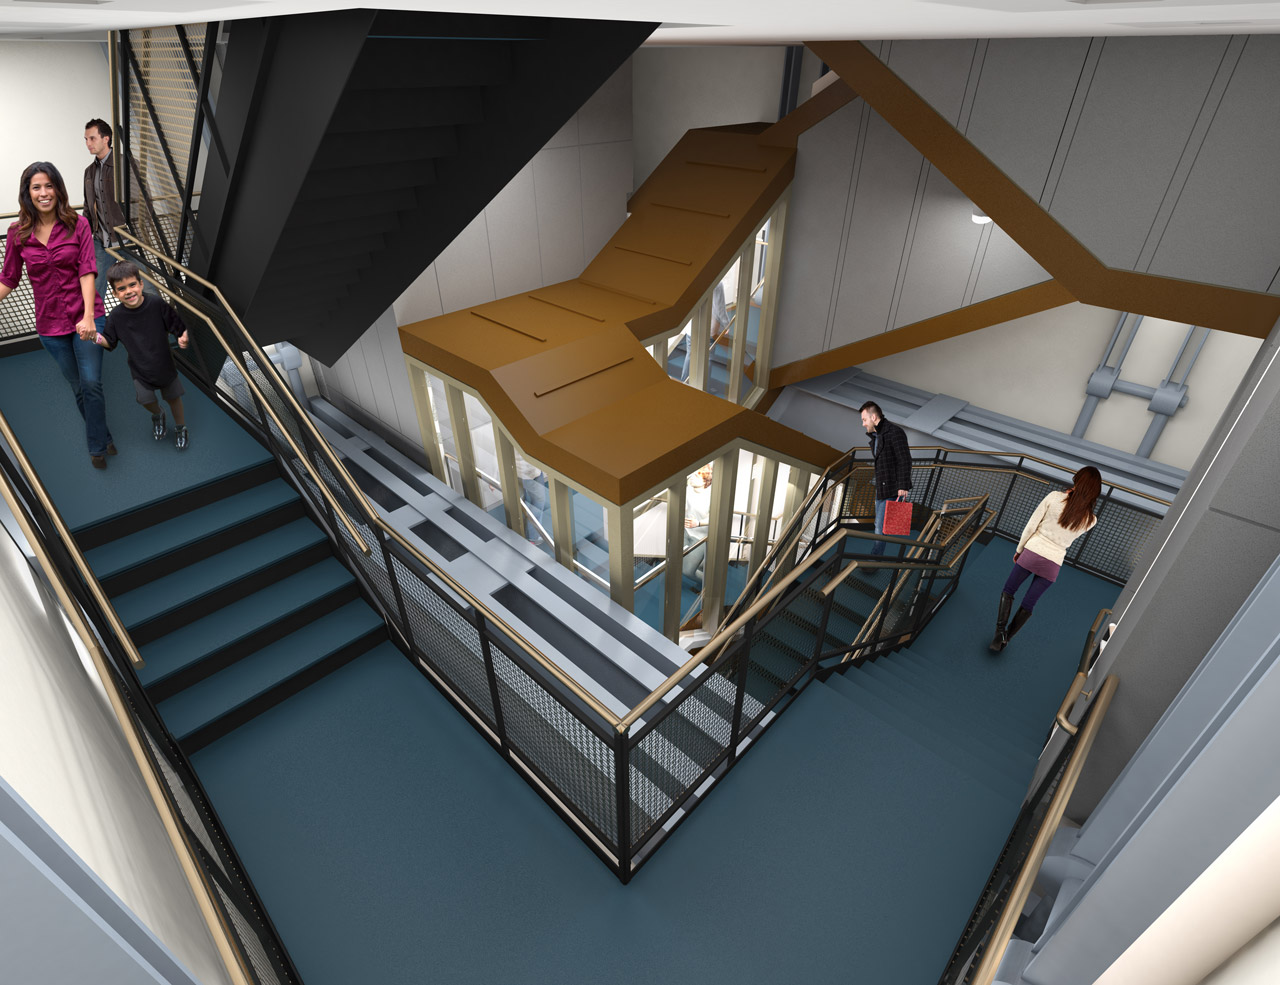 Artists Rendering of Stairs